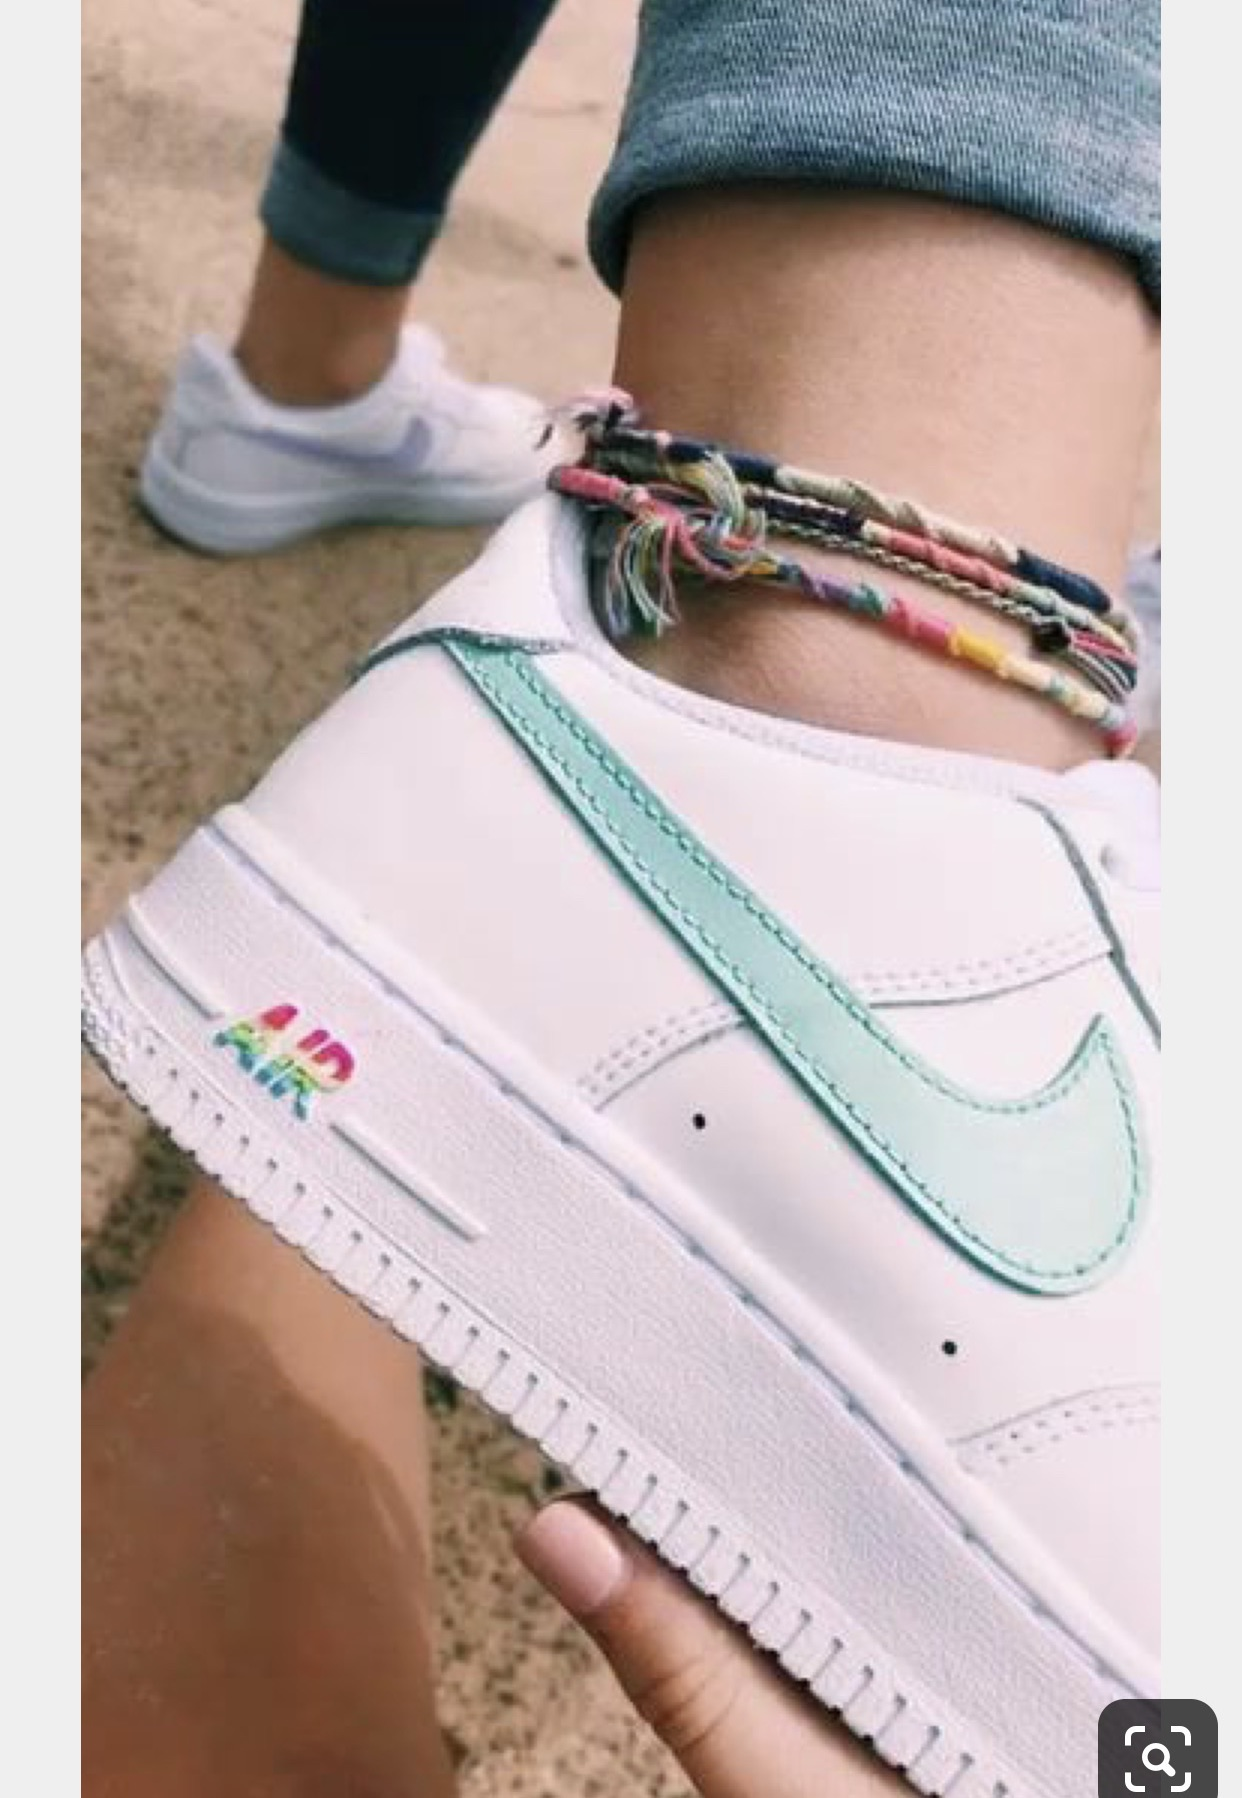 shoes nike nike shoes nike air force 1 low top sneakers cute unique shoes teal pink white girly sneakers tennis shoes